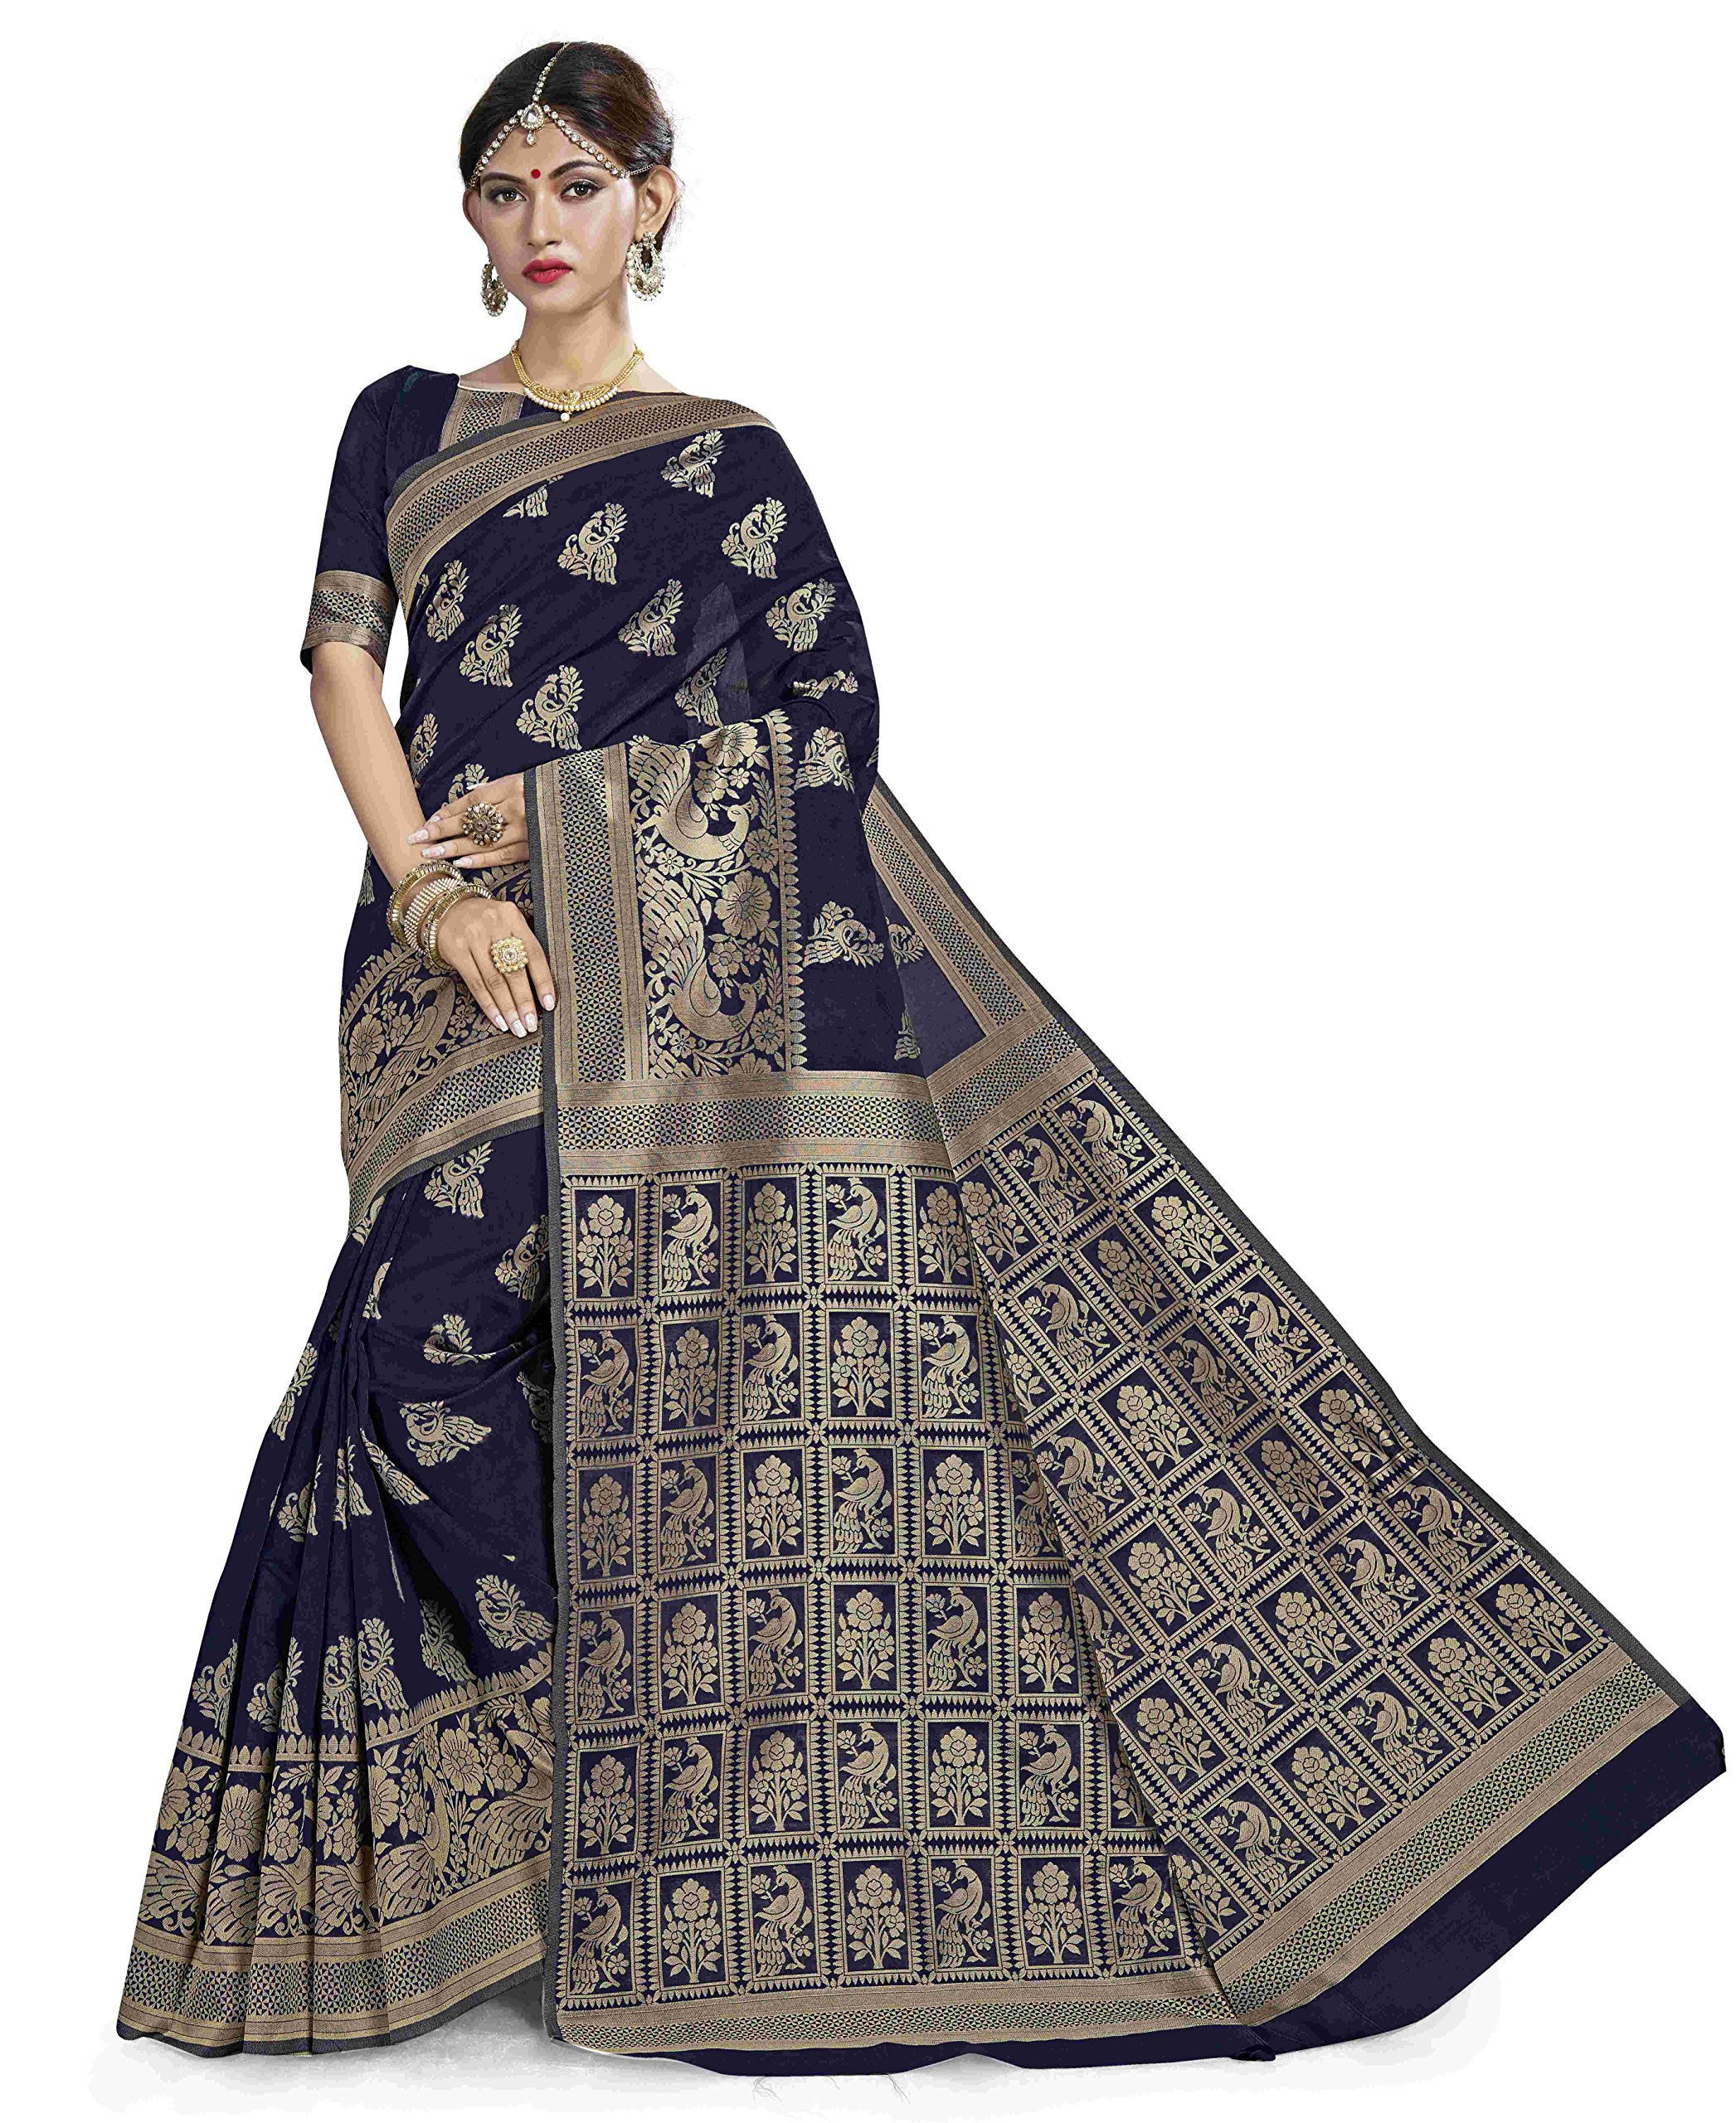 Saree for Women's Designer Bollywood Indian saree for women Traditional Festival PartyWear Wedding Half N Half Diamond With Embroidery Work Saree Latest Design With Unstiched Blouse(Saree # Sari)